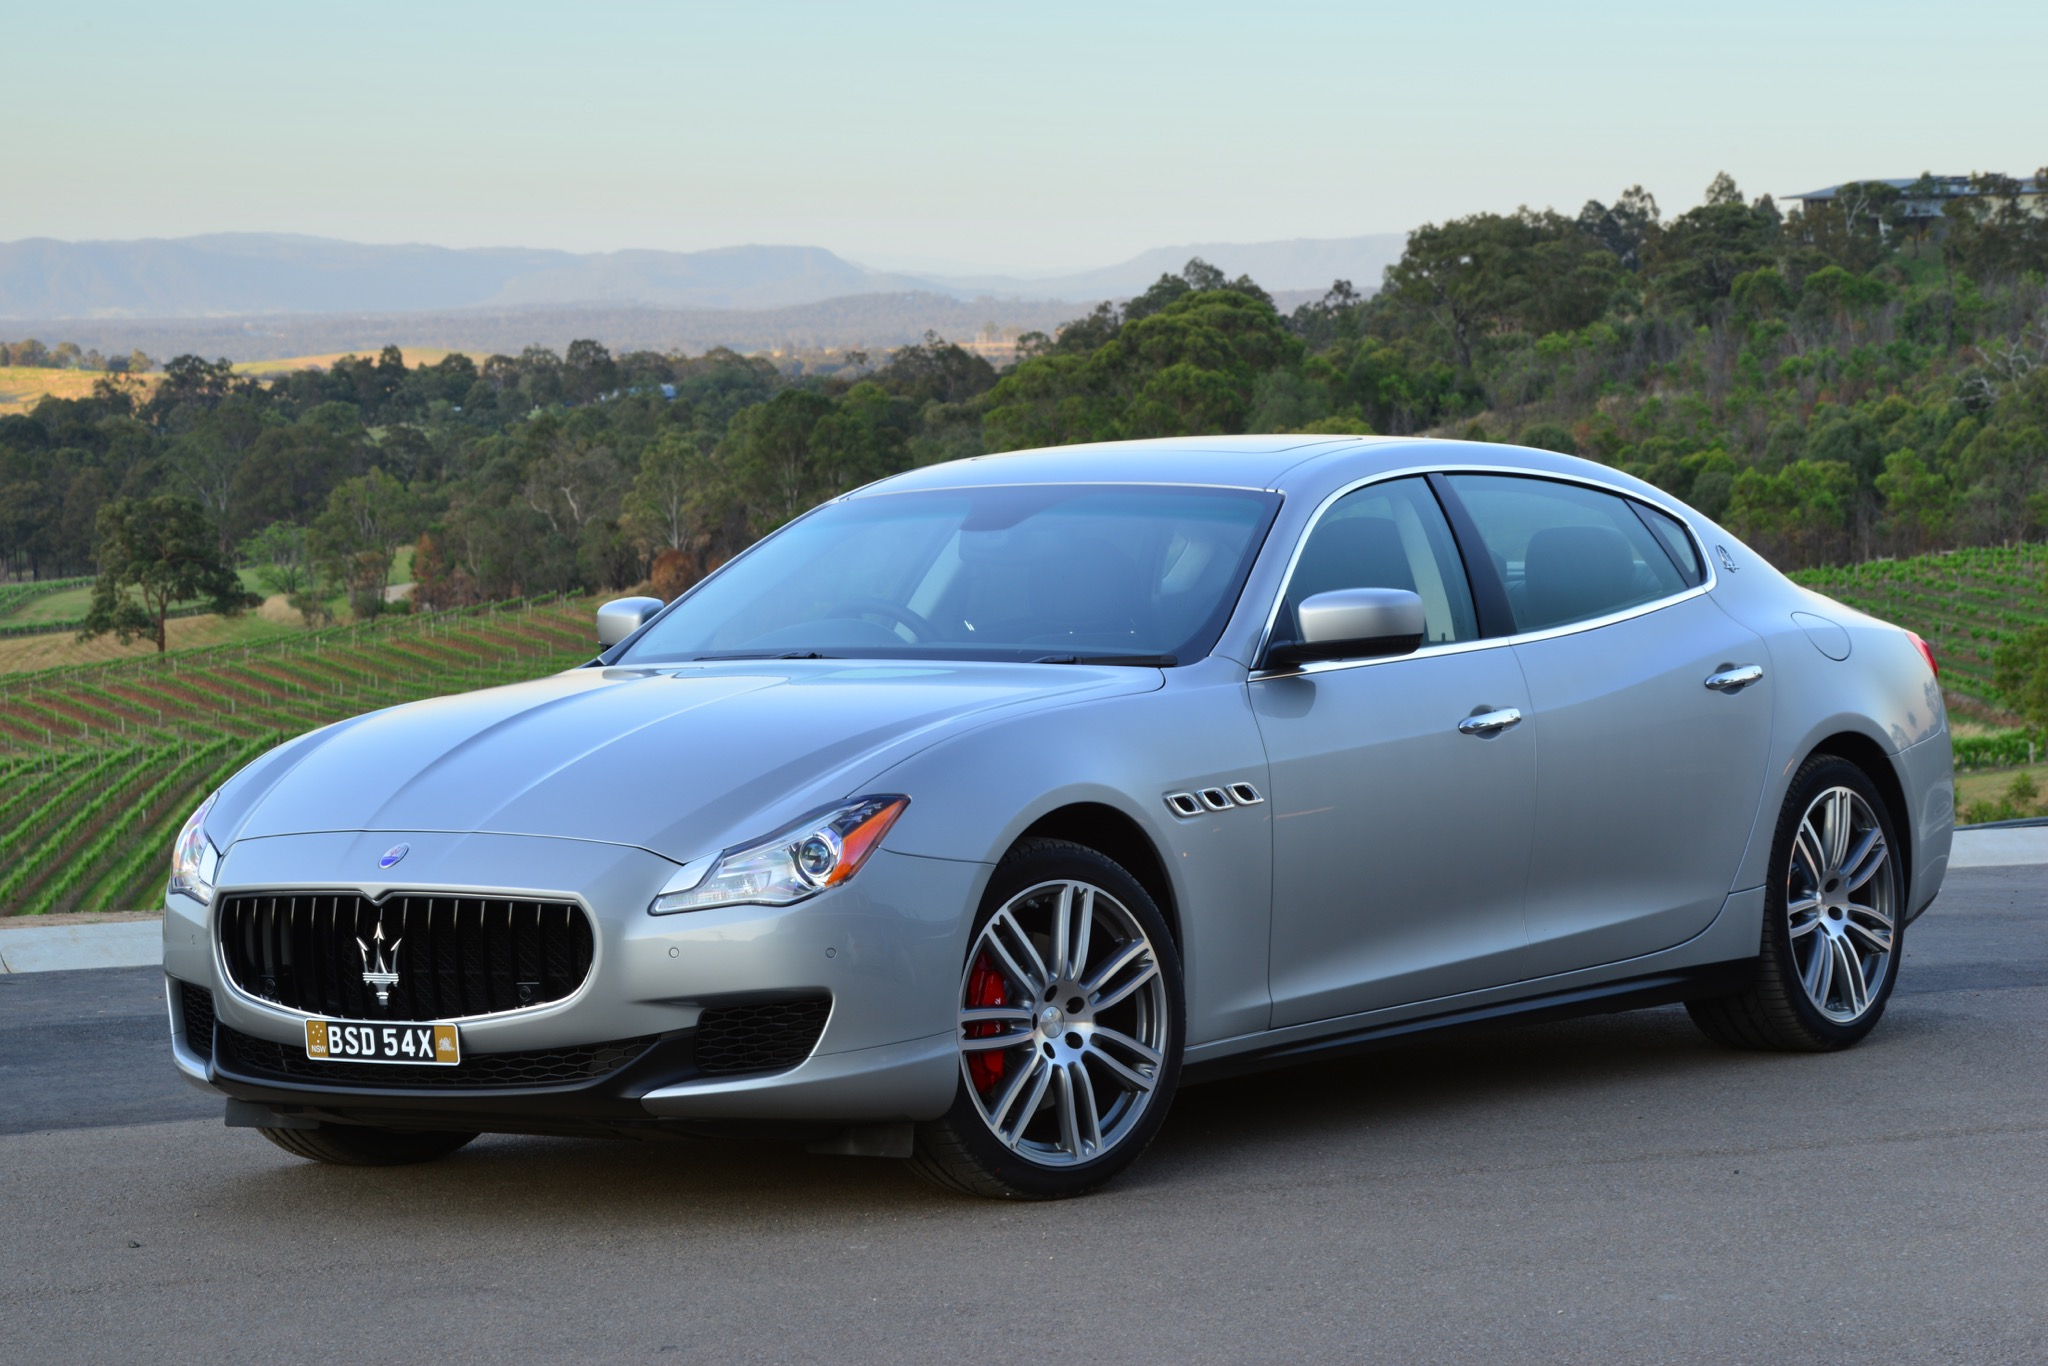 2016 Maserati Quattroporte Review Photos Caradvice